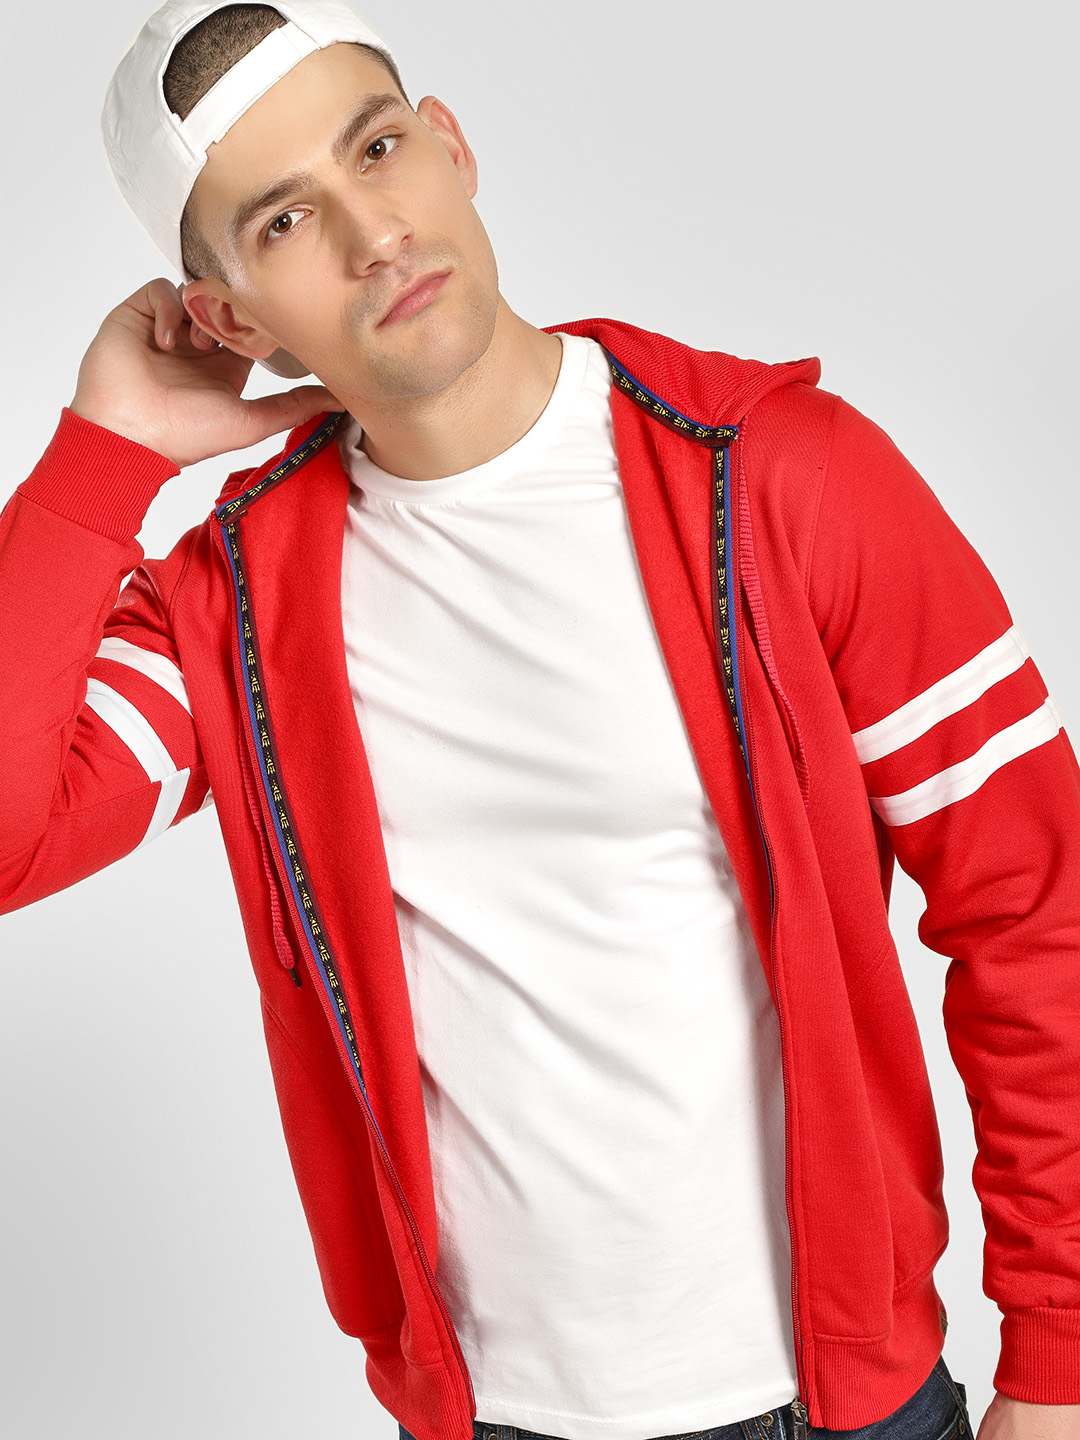 Blotch Red Drawstring Hoodie With Stripes 1